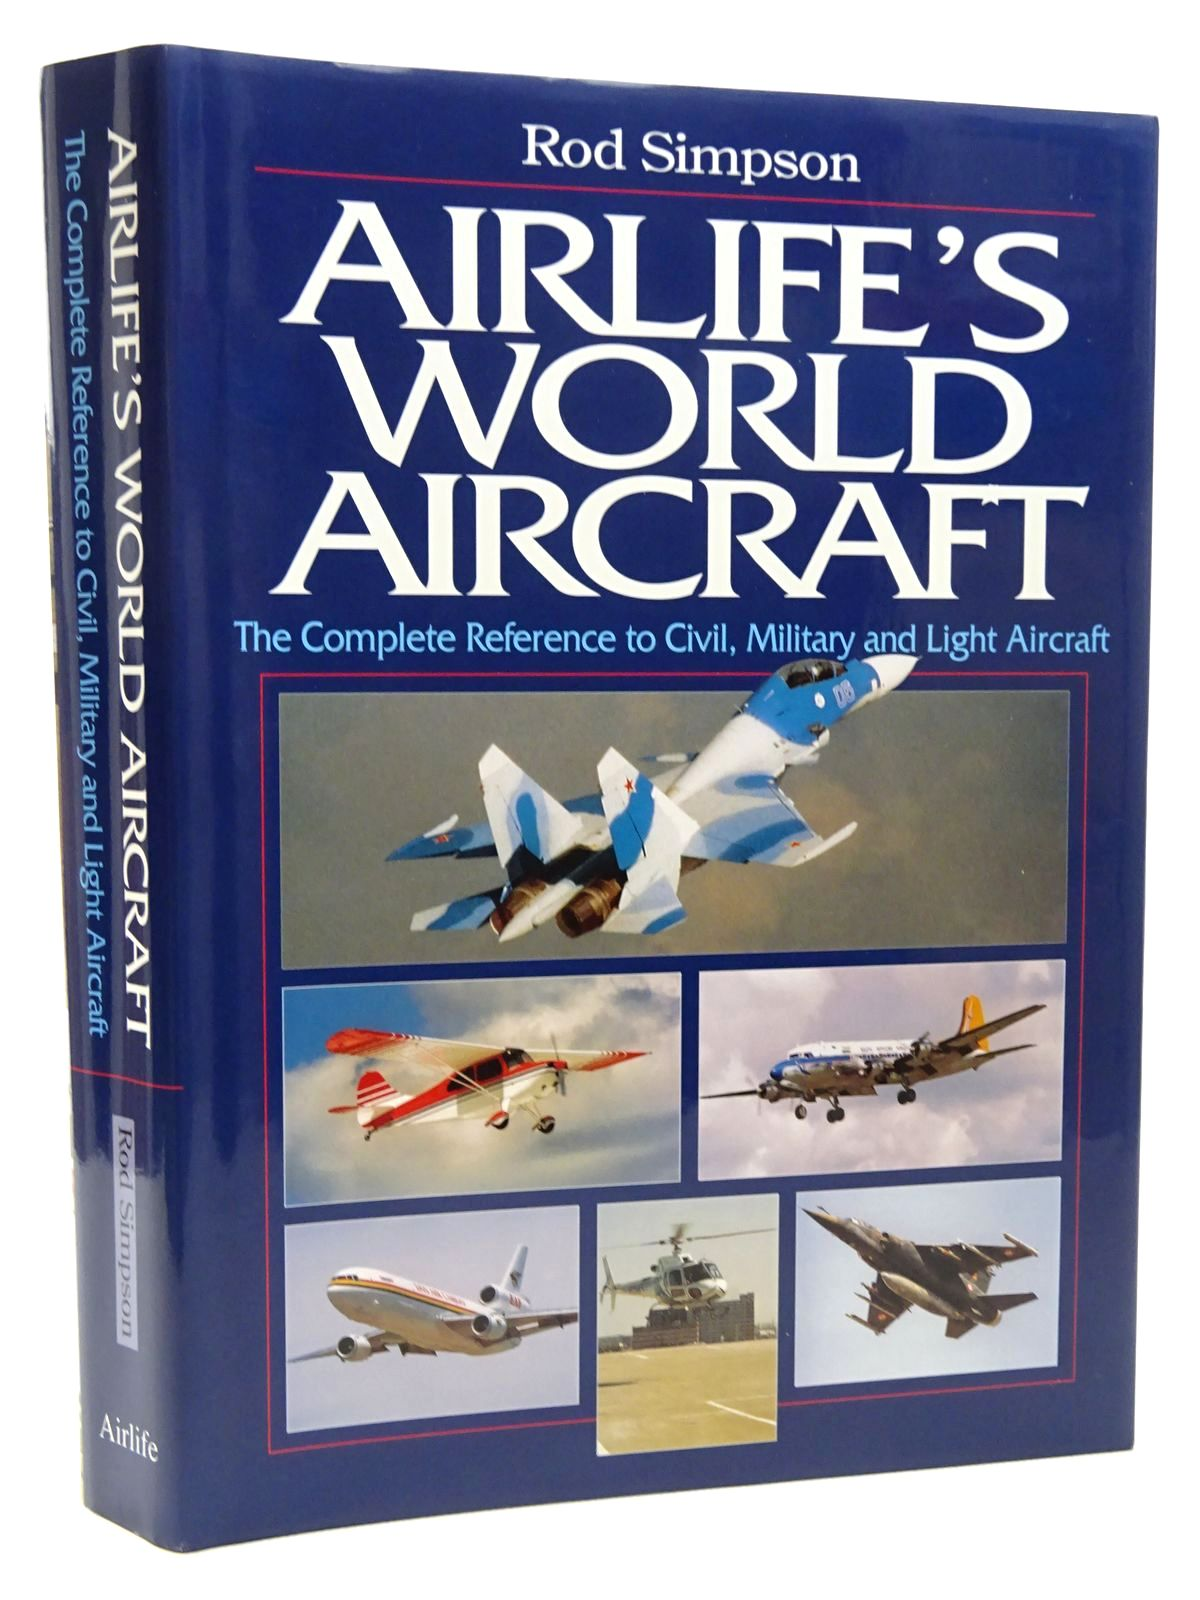 Photo of AIRLIFE'S WORLD AIRCRAFT written by Simpson, Rod published by Airlife (STOCK CODE: 2124602)  for sale by Stella & Rose's Books